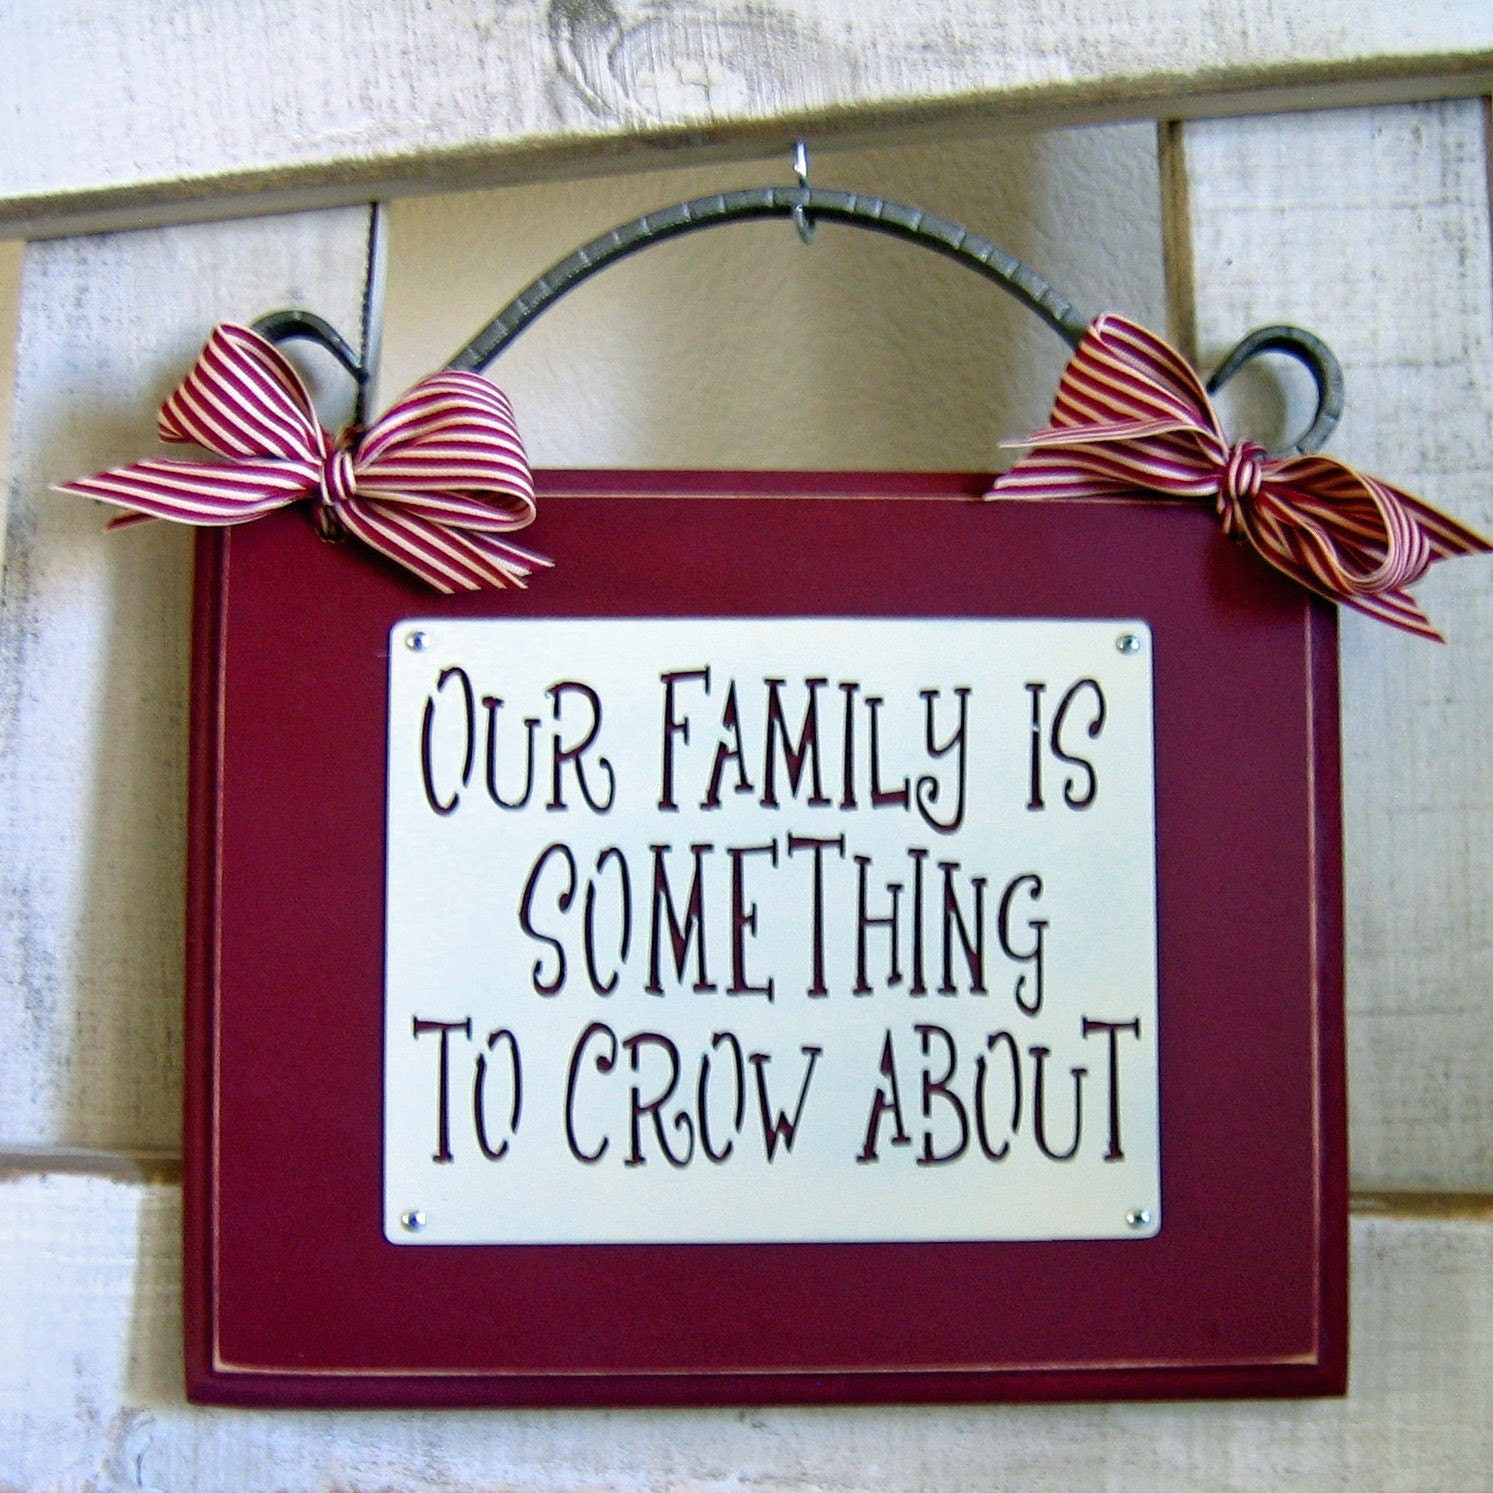 Our Family Is Something To Crow About Metal on Wood Plaque